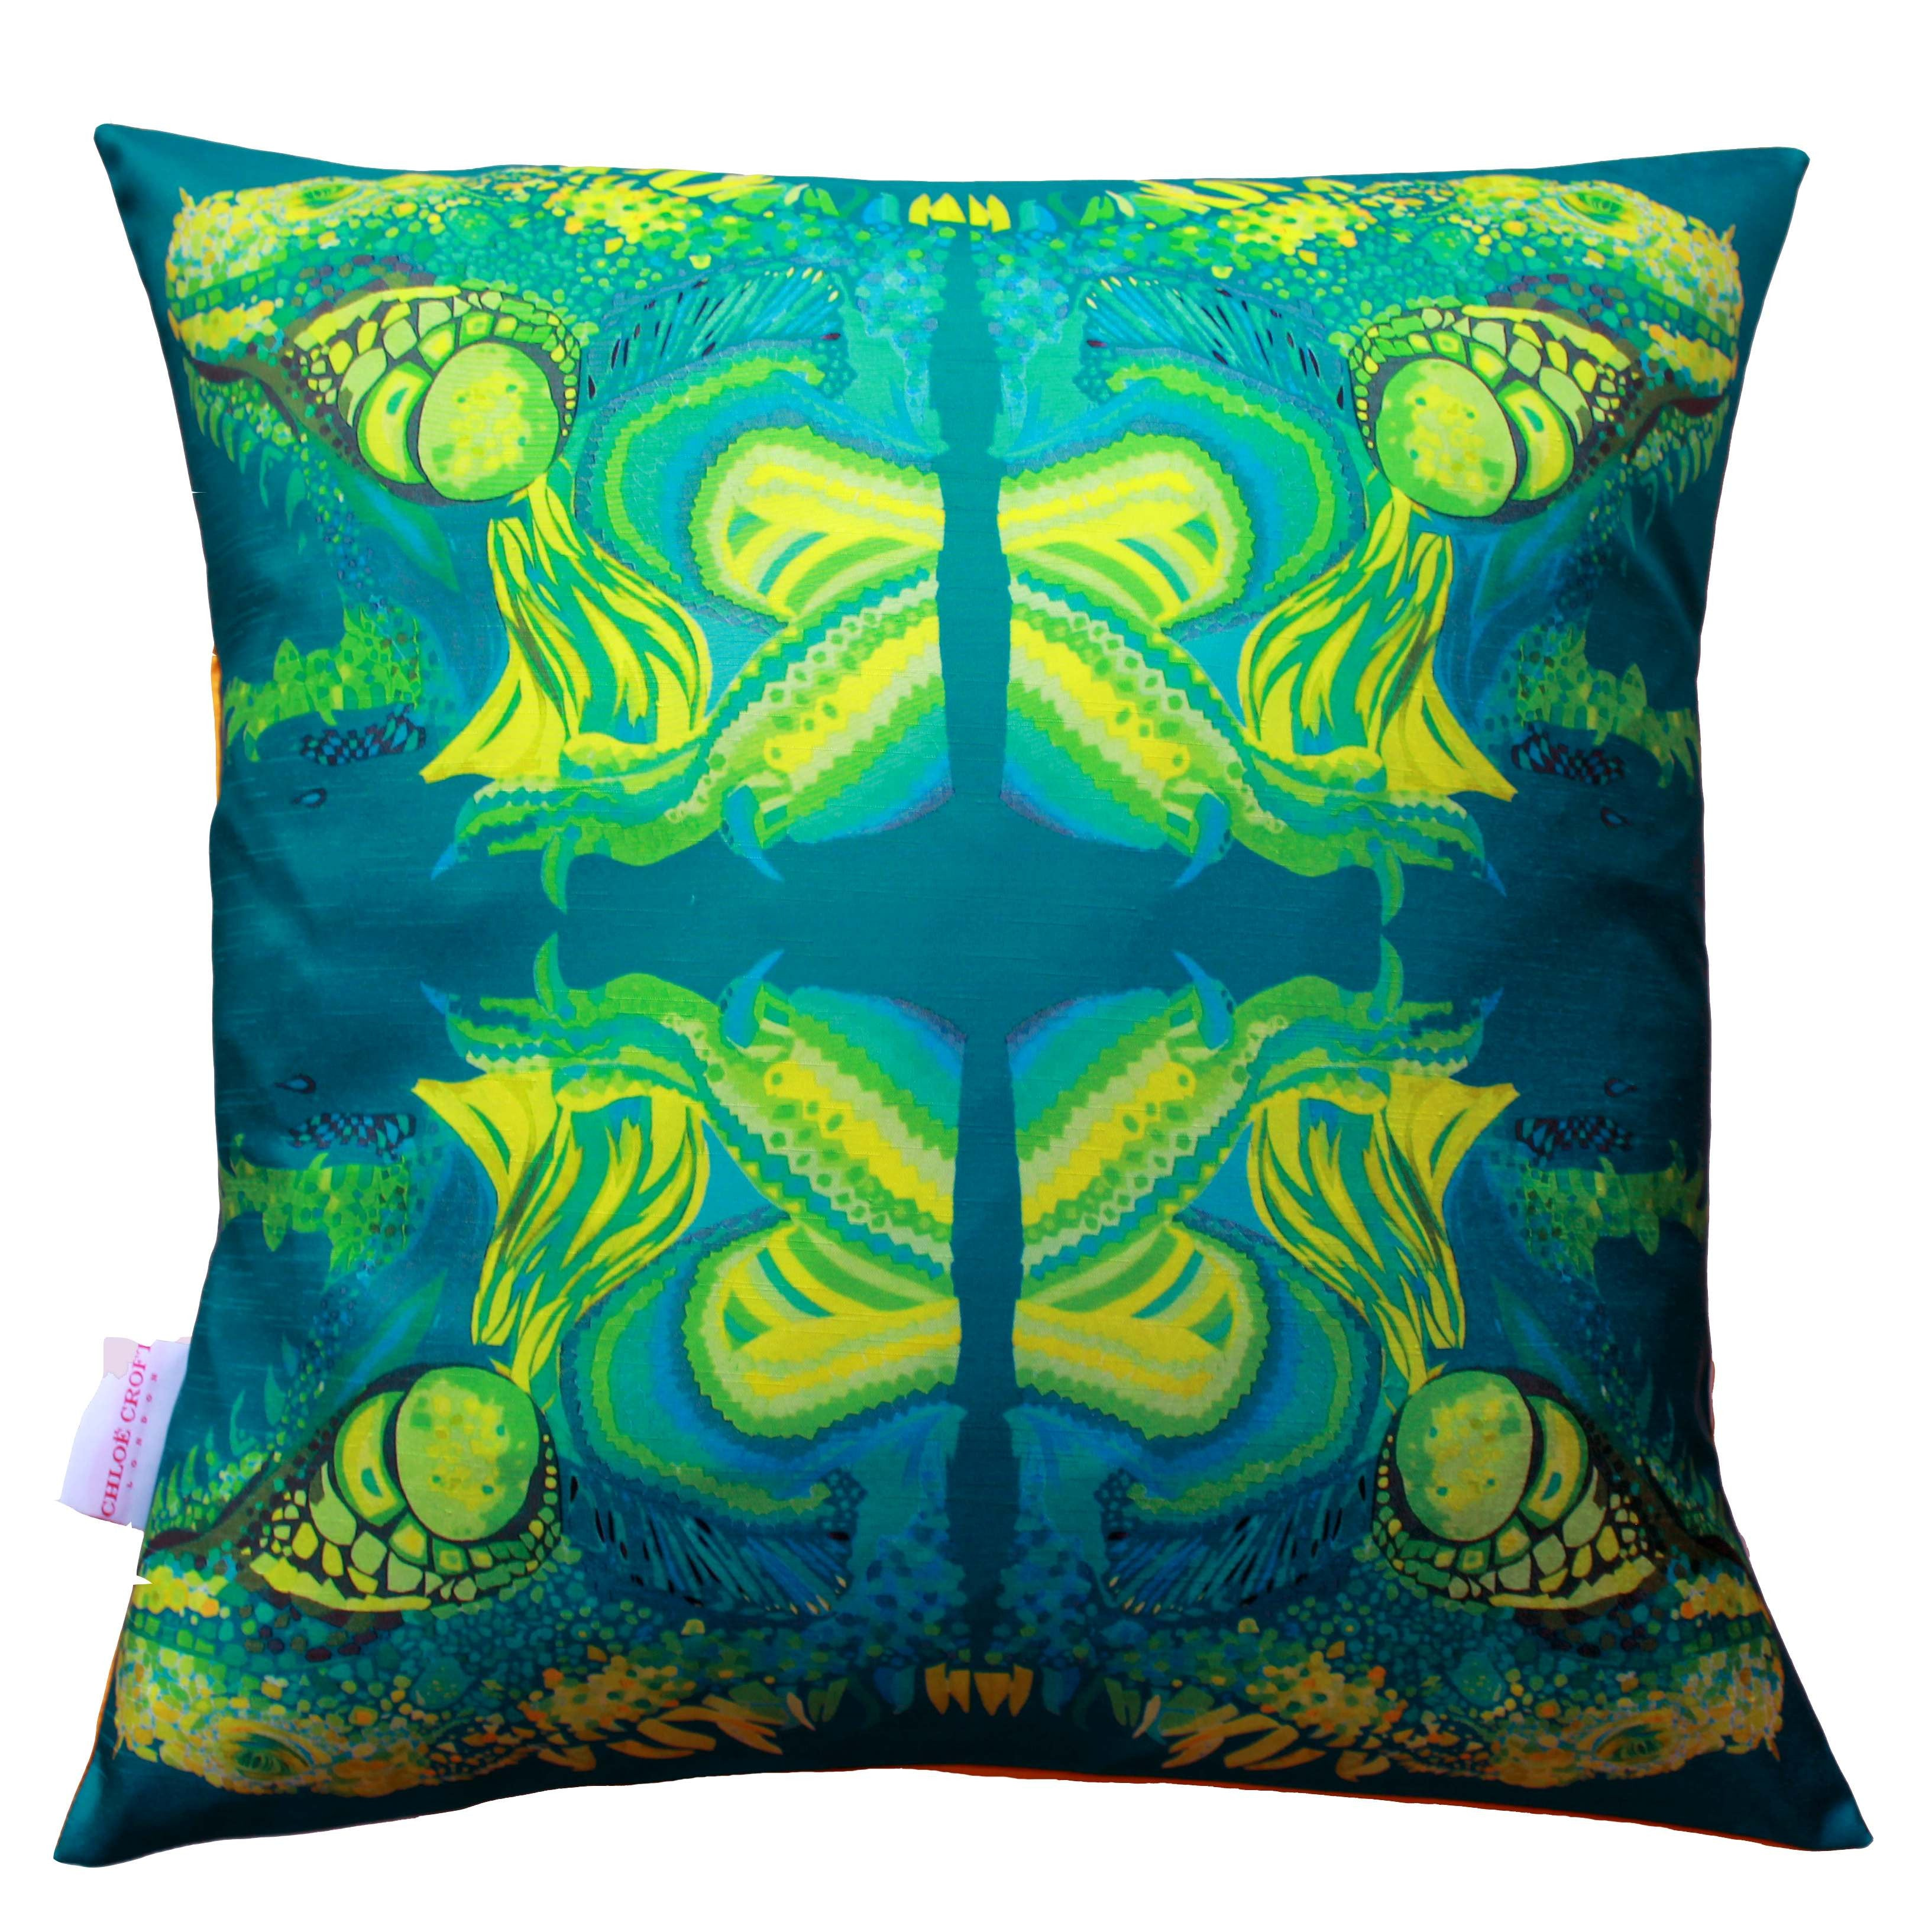 Illusive iguanas cushion